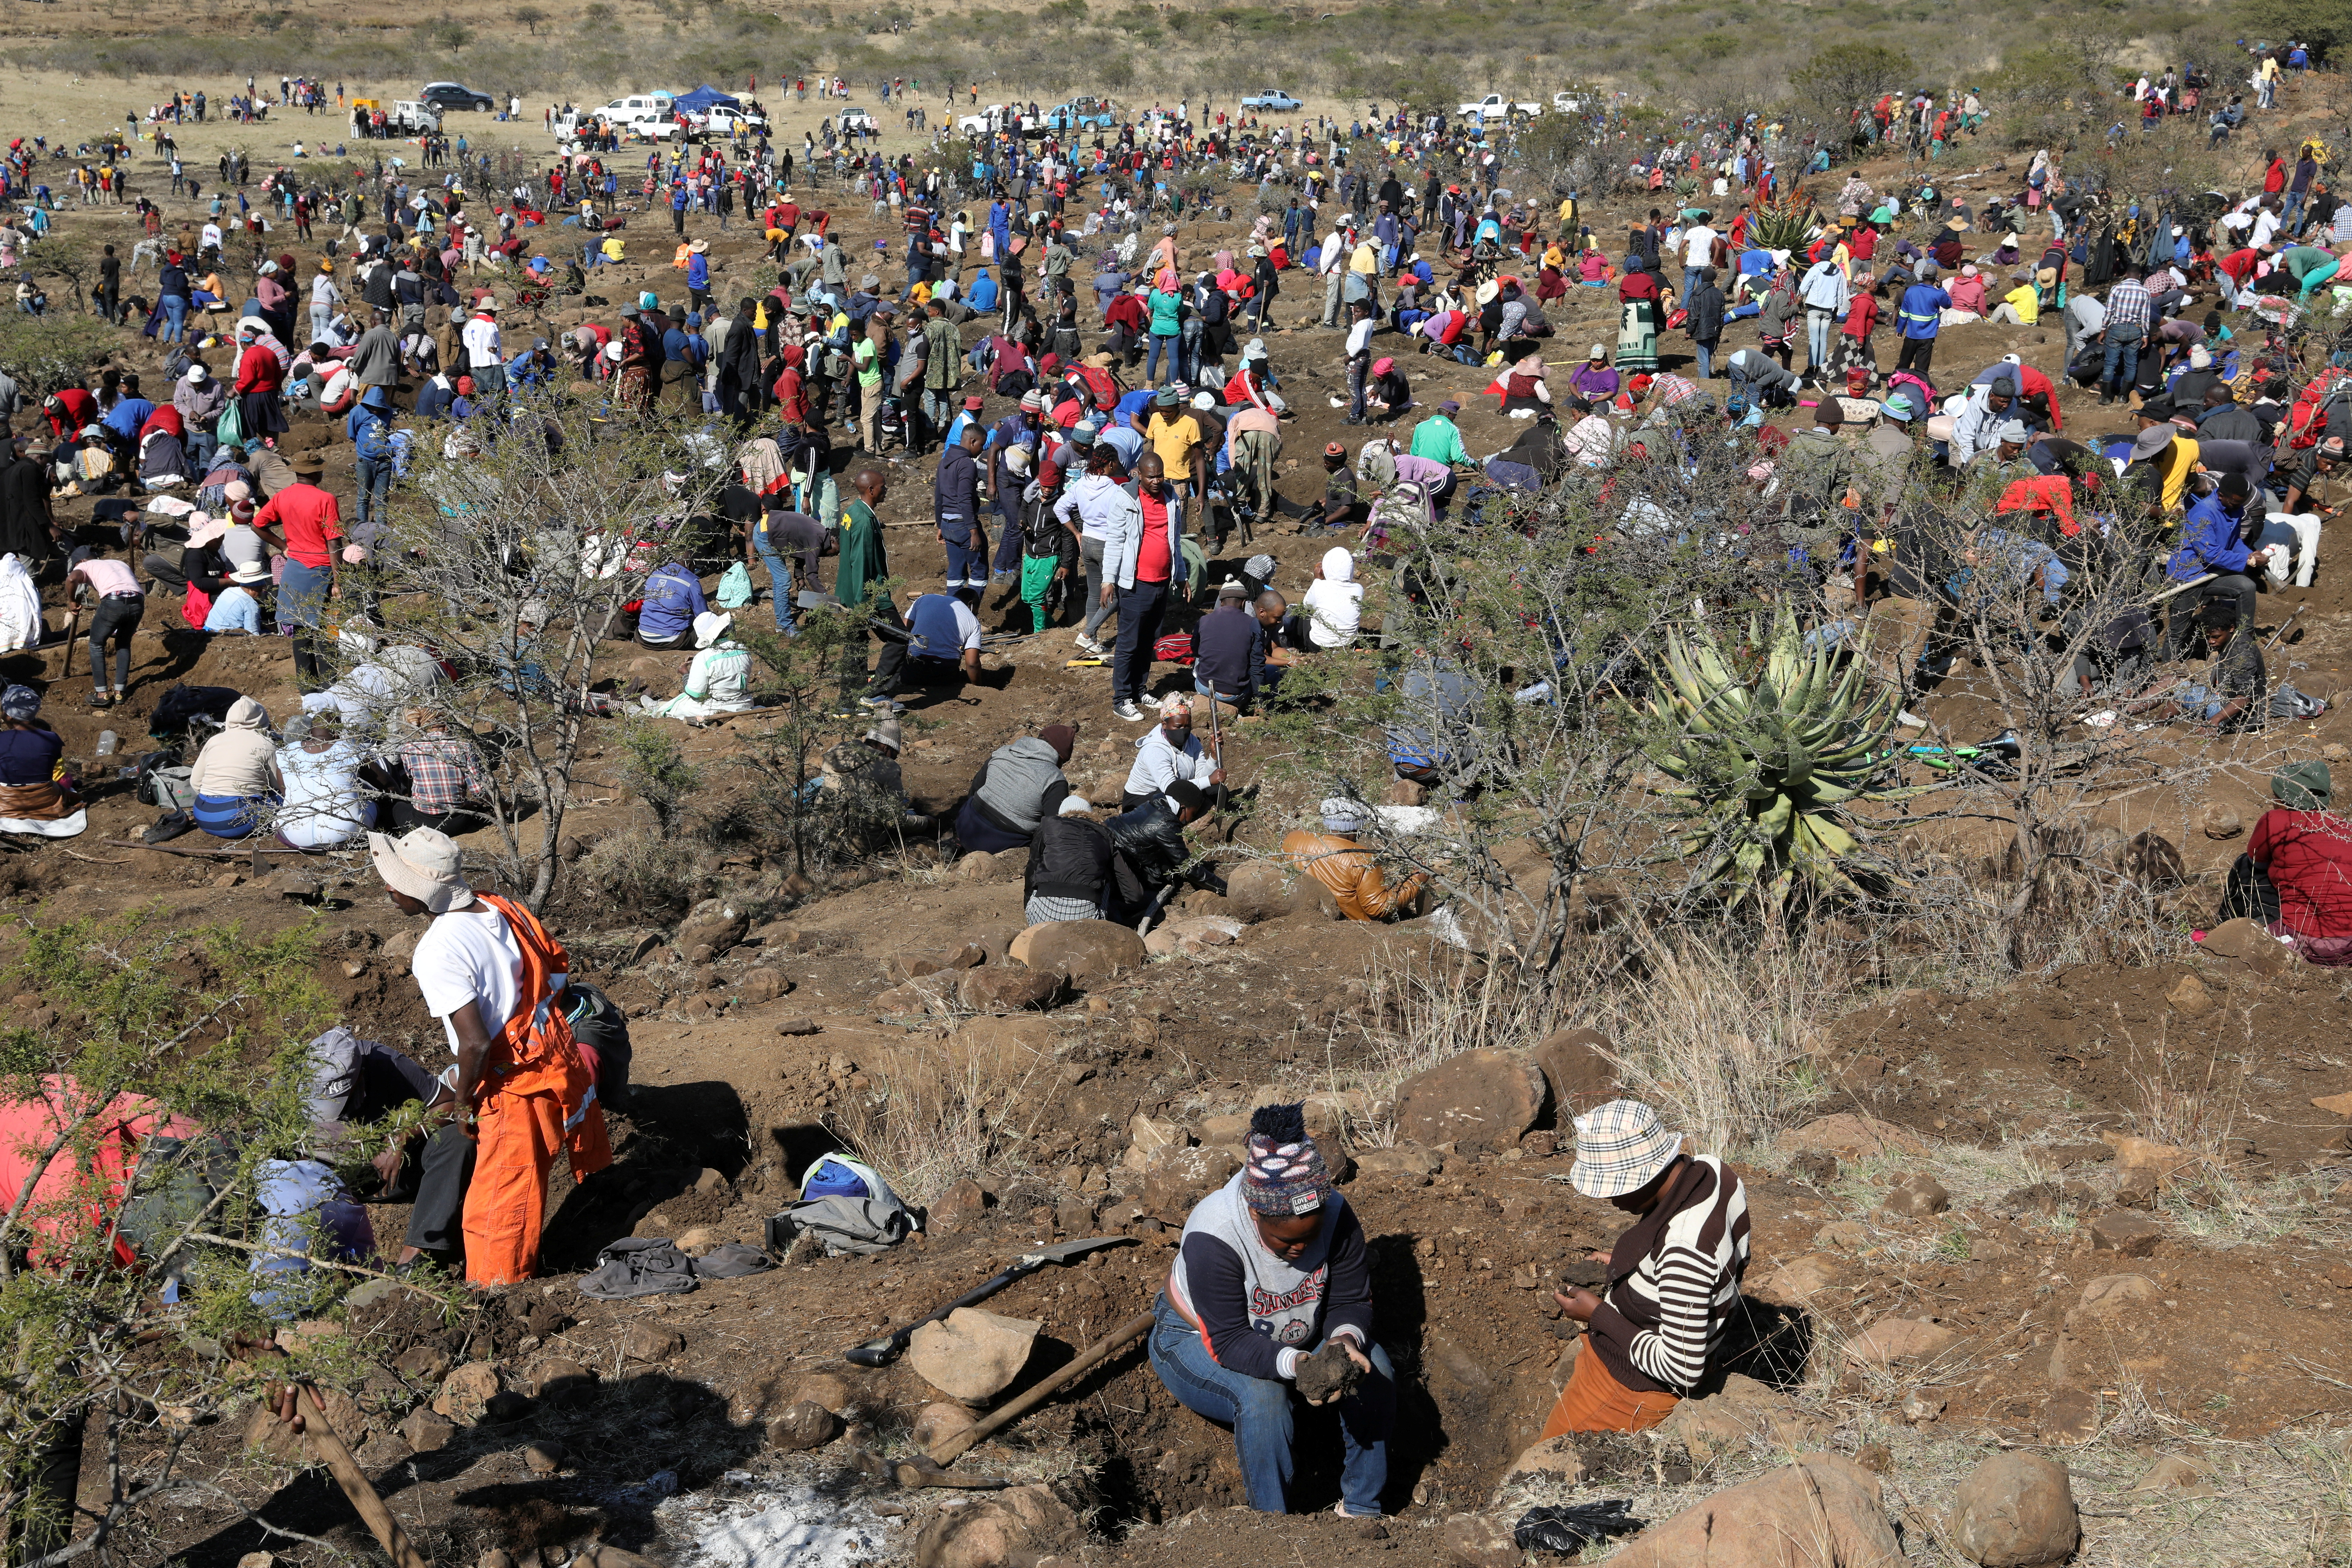 Fortune seekers are seen as they flock to the village after pictures and videos were shared on social media showing people celebrating after finding what they believe to be diamonds, in the village of KwaHlathi outside Ladysmith, in KwaZulu-Natal province, South Africa, June 14, 2021. REUTERS/Siphiwe Sibeko/File Photo